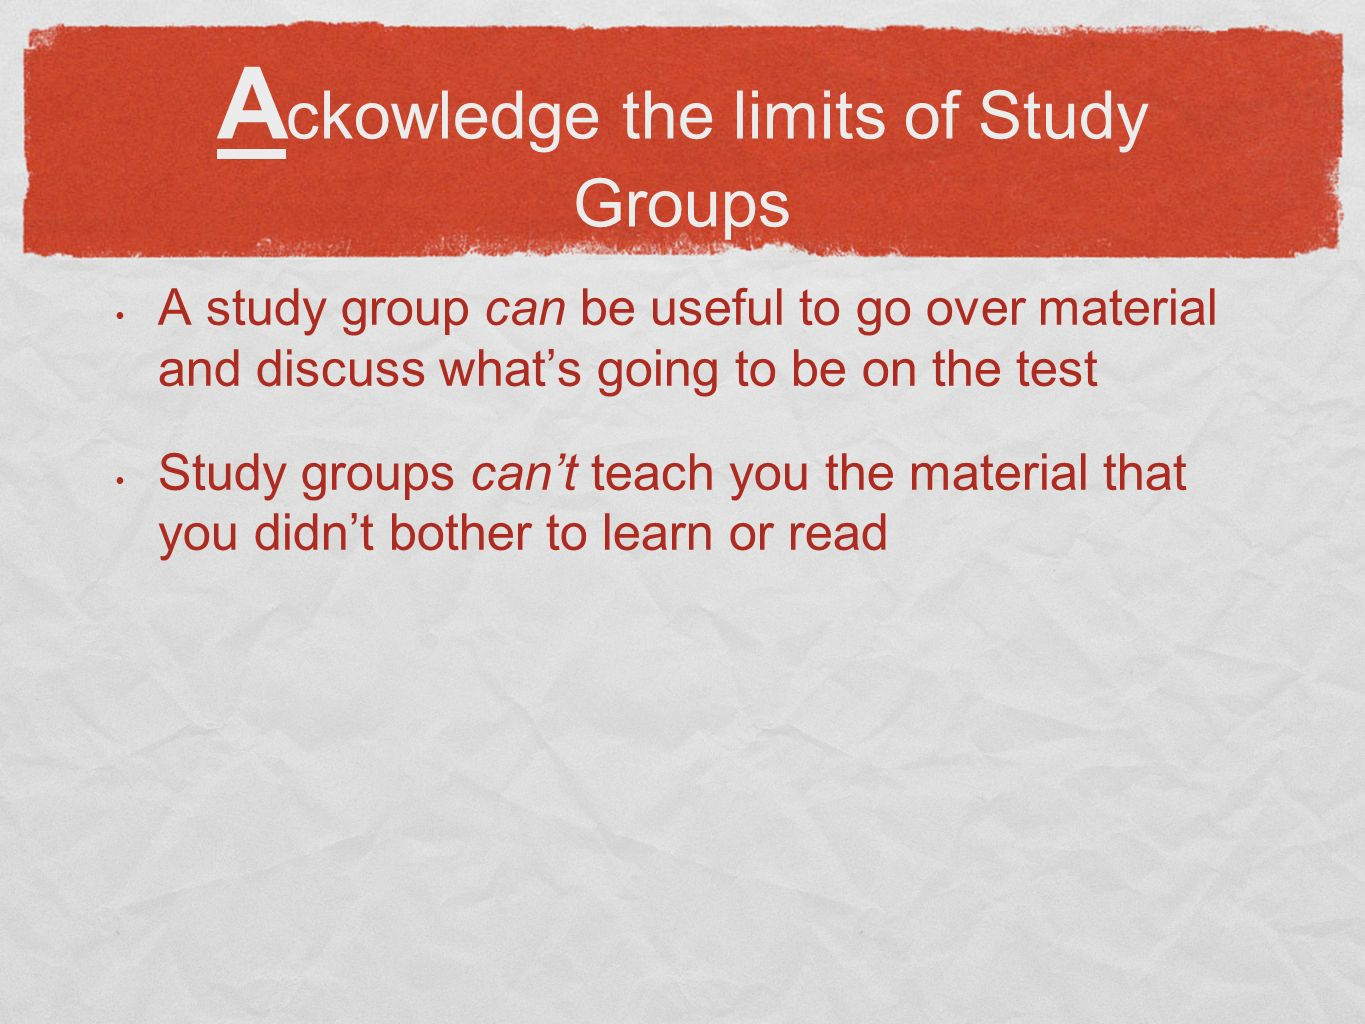 A ckowledge the limits of Study Groups A study group can be useful to go over material and discuss whats going to be on the test Study groups cant teach you the material that you didnt bother to learn or read